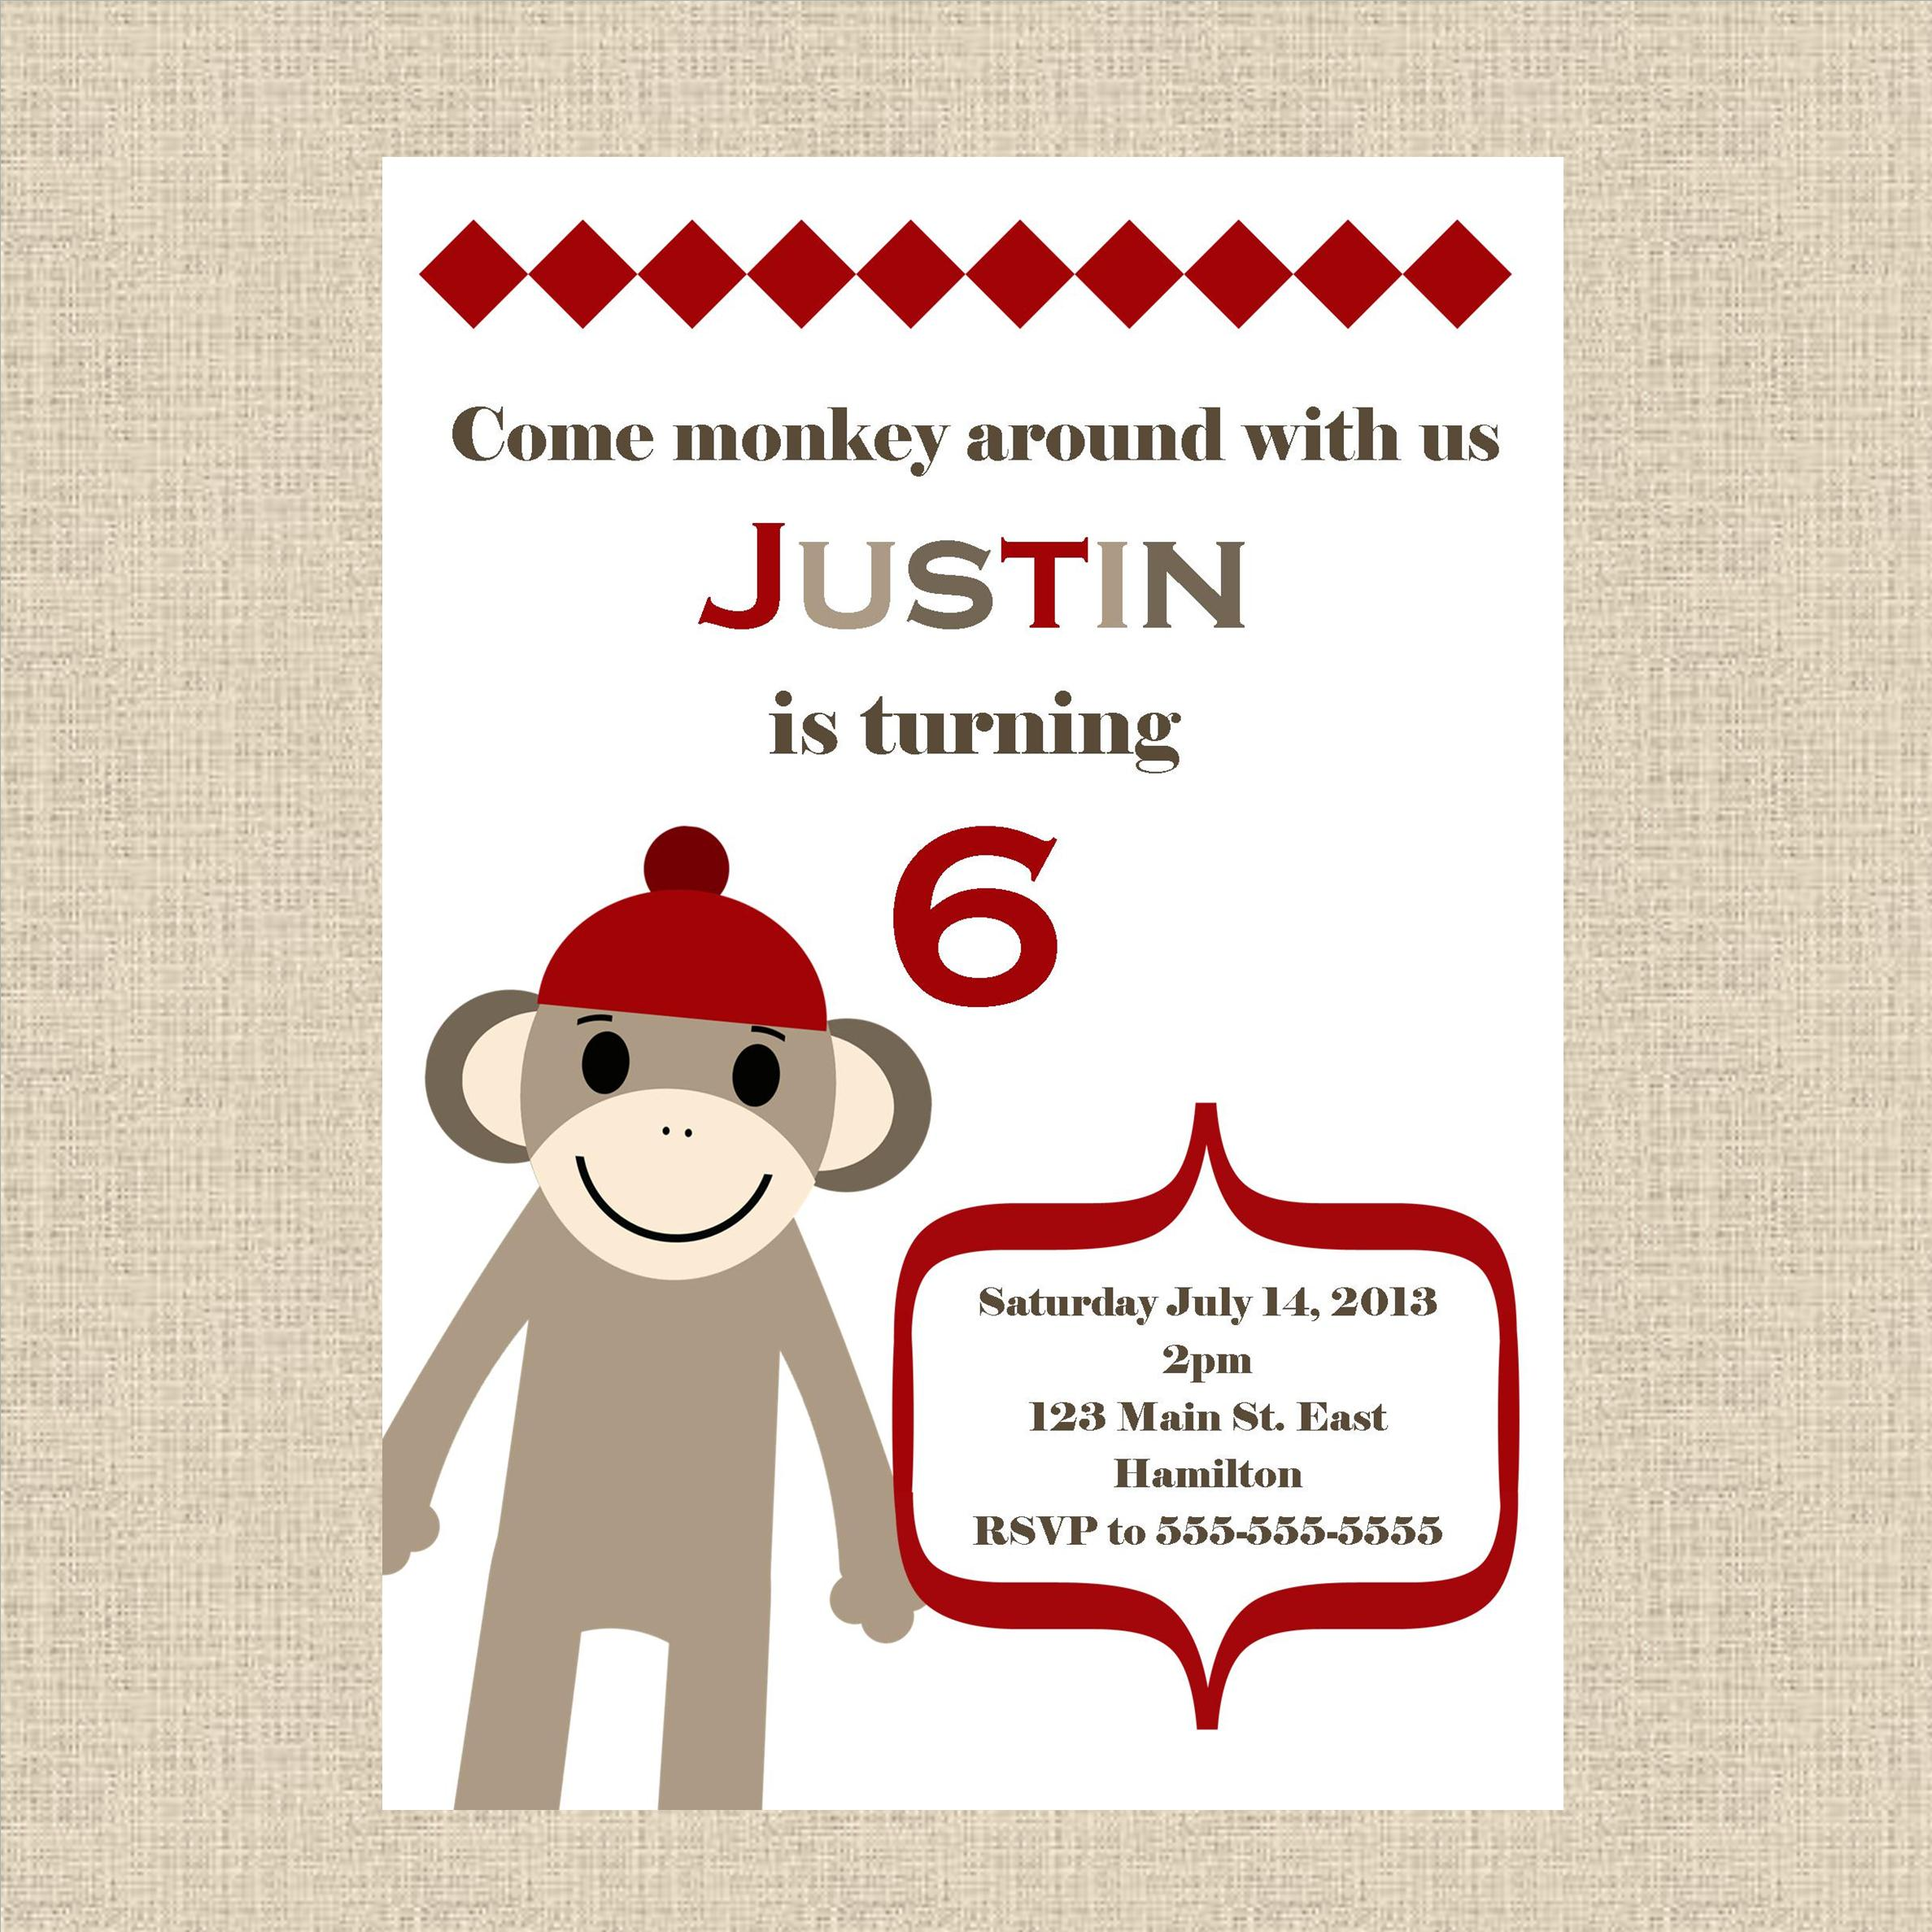 sock monkey birthday invitation template ; product-original-11641-1162-1327786911-fe55f449ac195fcb5a354592f7d60ea5